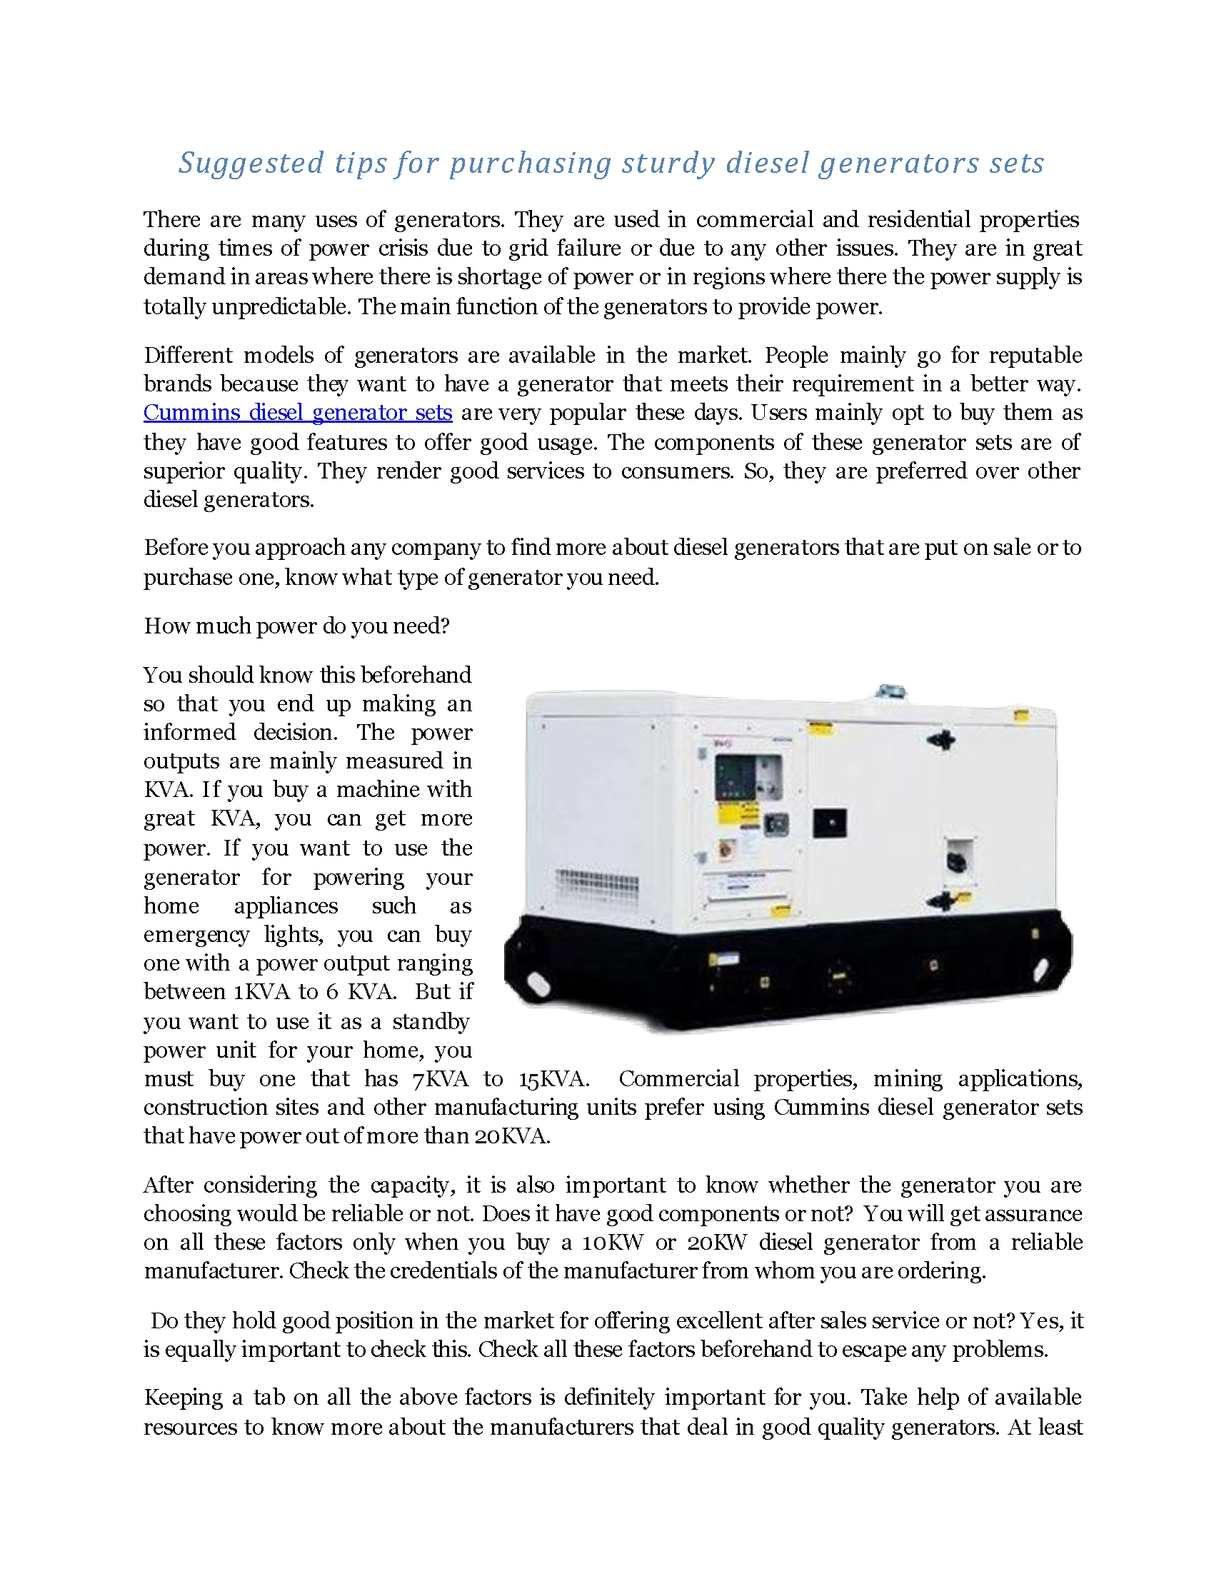 Calaméo - Suggested tips for purchasing sturdy diesel generators sets